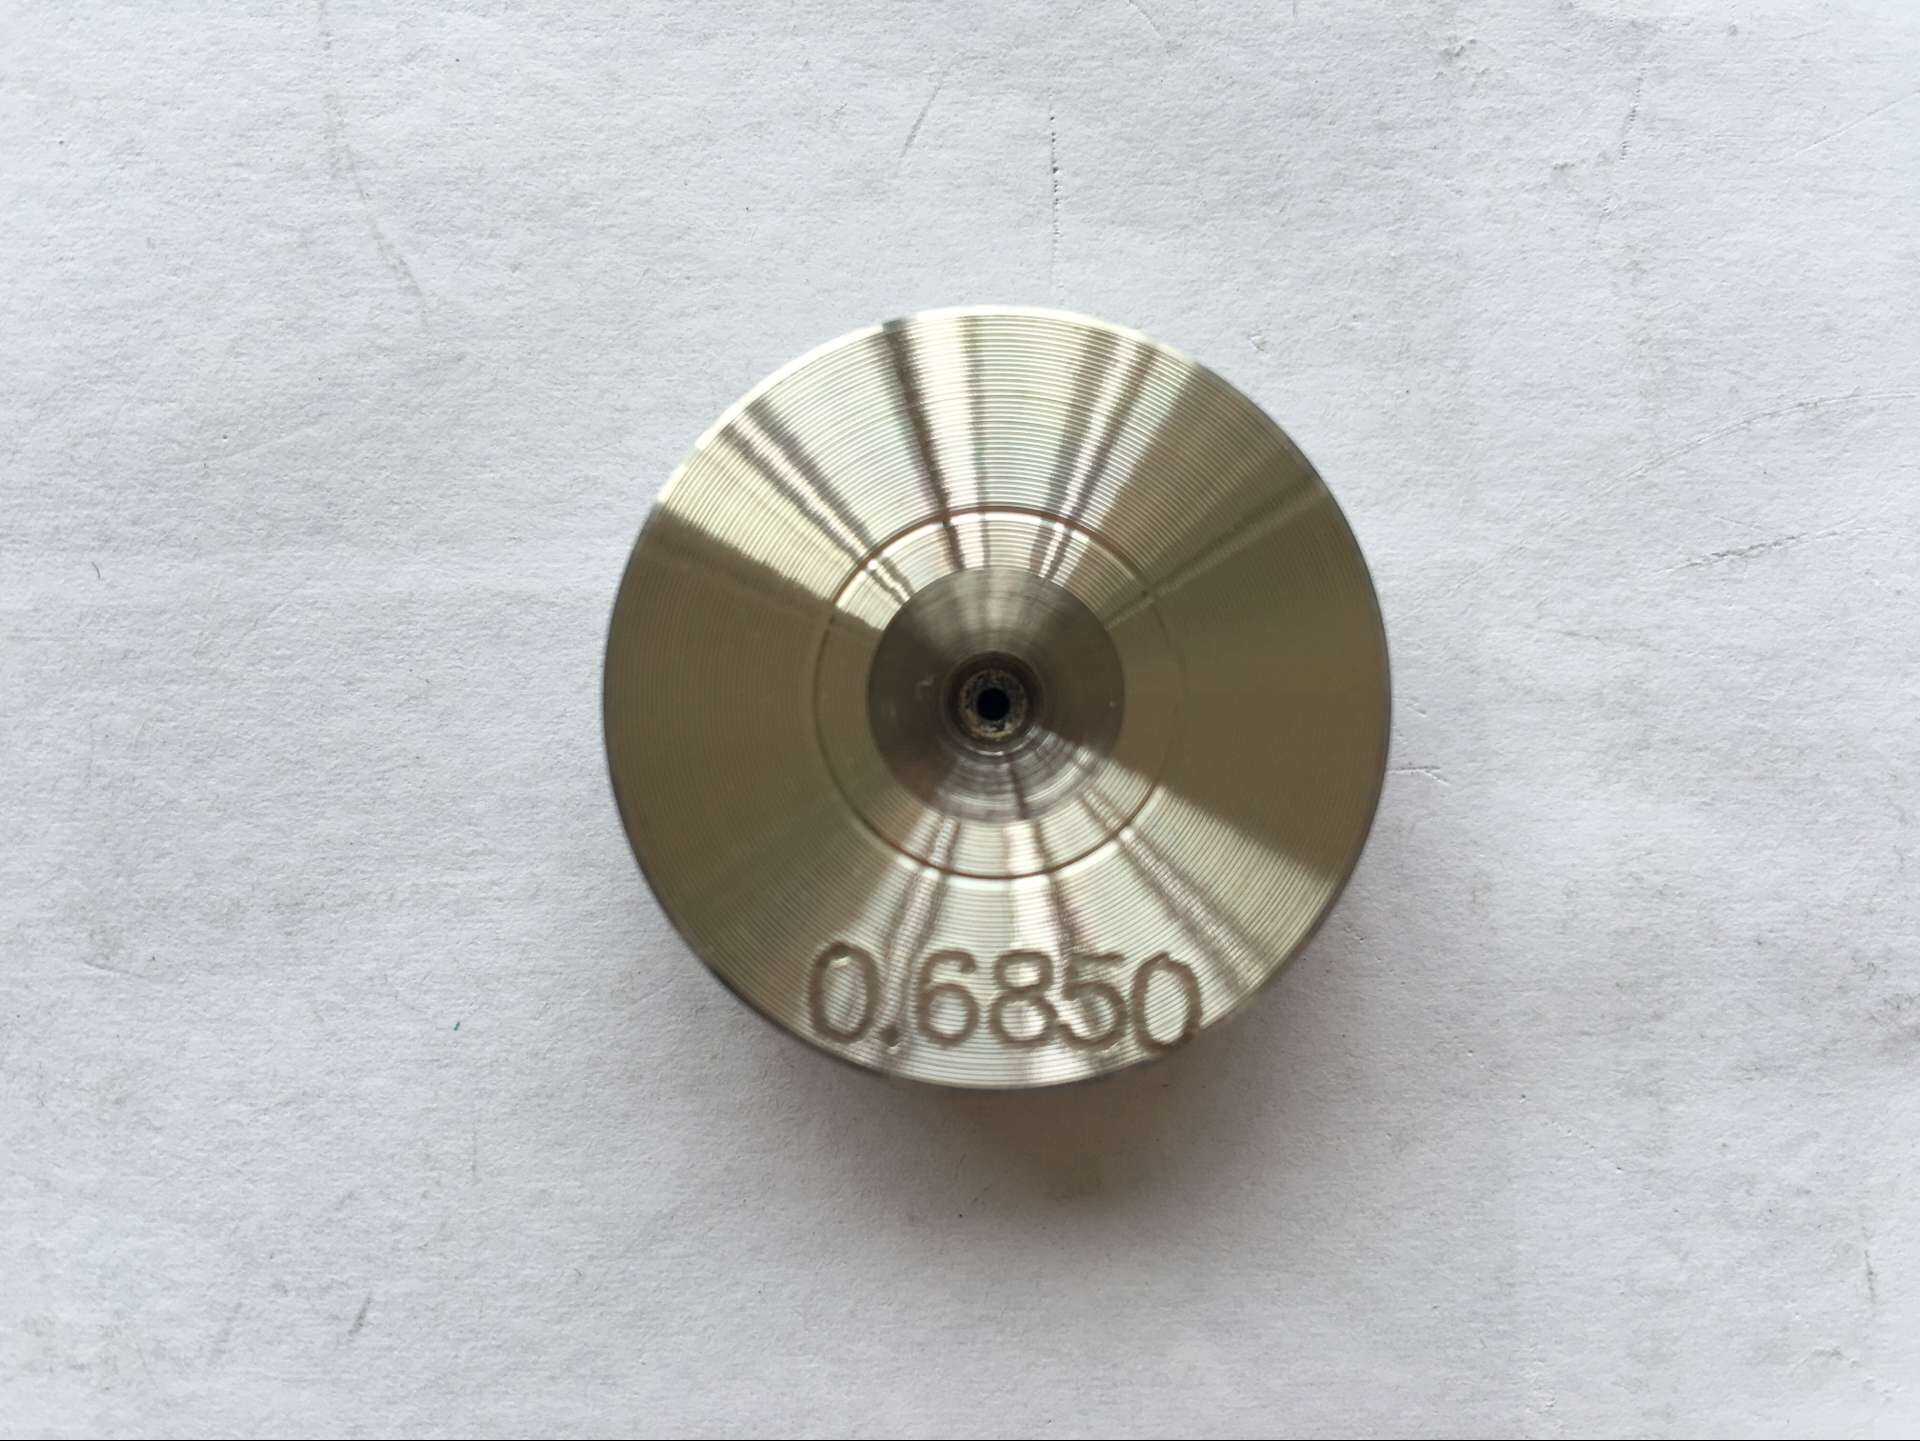 Pcd Nd Wire Drawing Die Changsha 3 Better Ultra Hard Materials Coltd Copper Or Aluminum Wiring Platinum Rhodium Gold Silver Molybdenum Nickel Tungsten Alloy And Other Nonferrous Metal